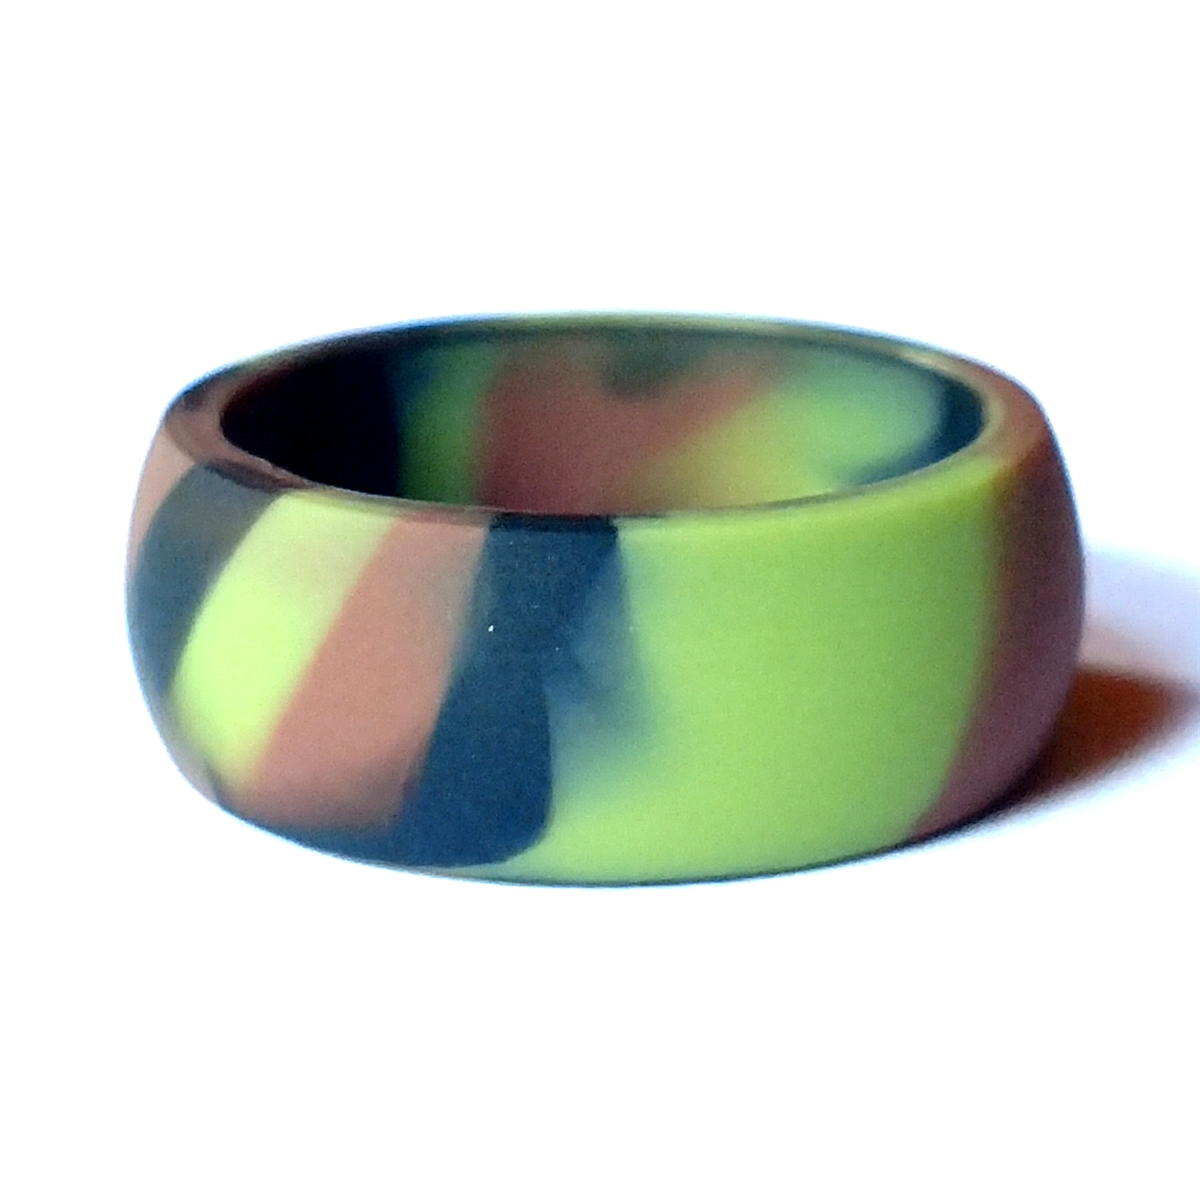 Original Camouflage Men S Silicone Wedding Ring By Aktyvus